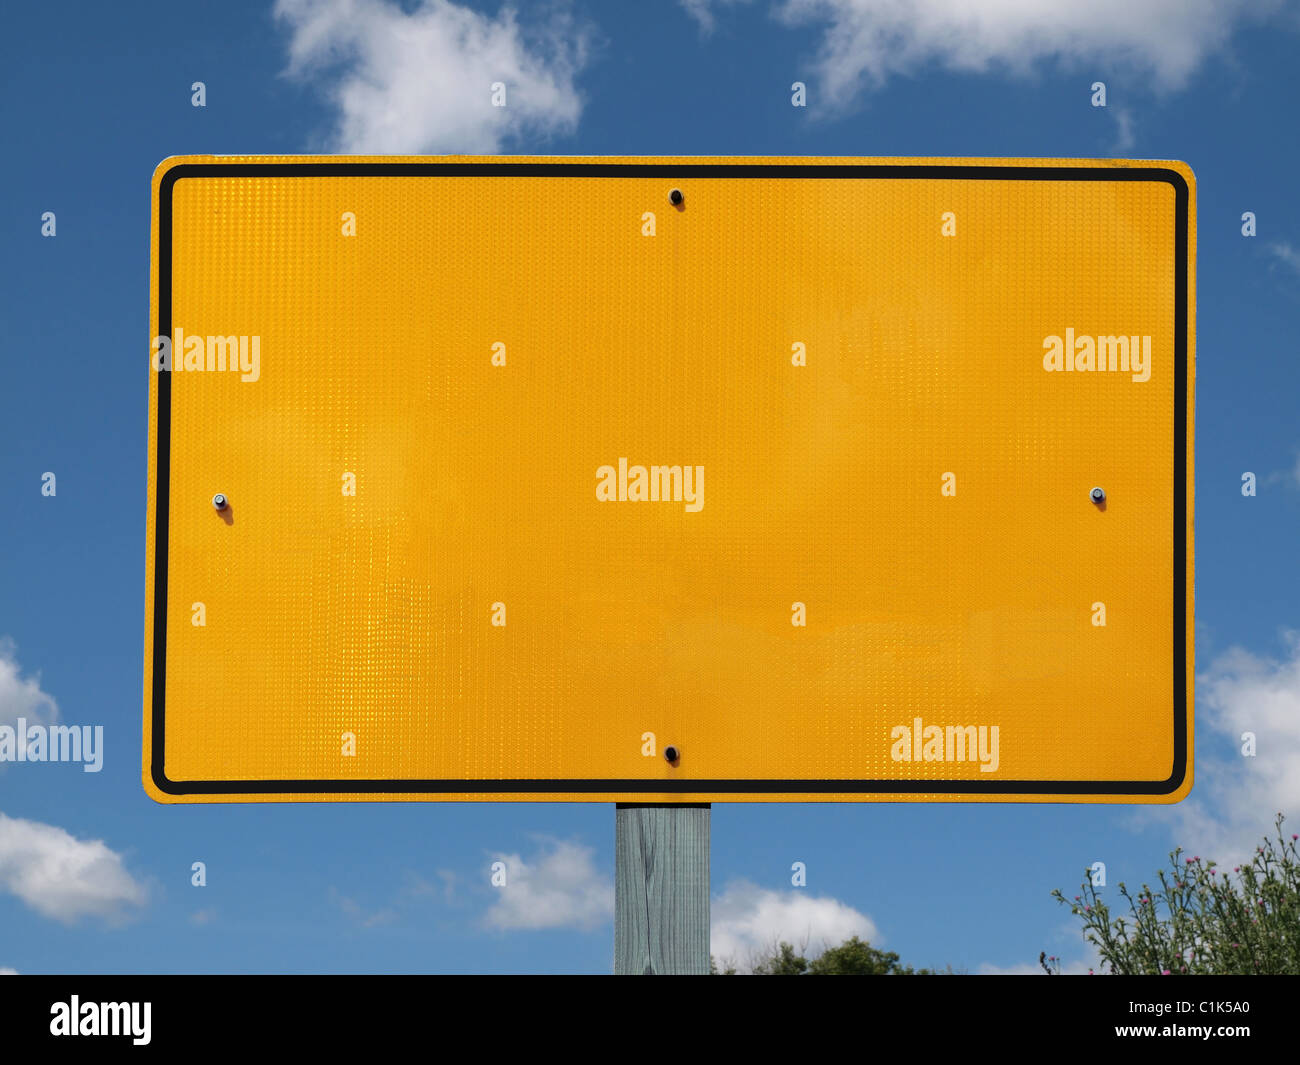 Blank reflective yellow highway message sign with puffy clouds. Stock Photo